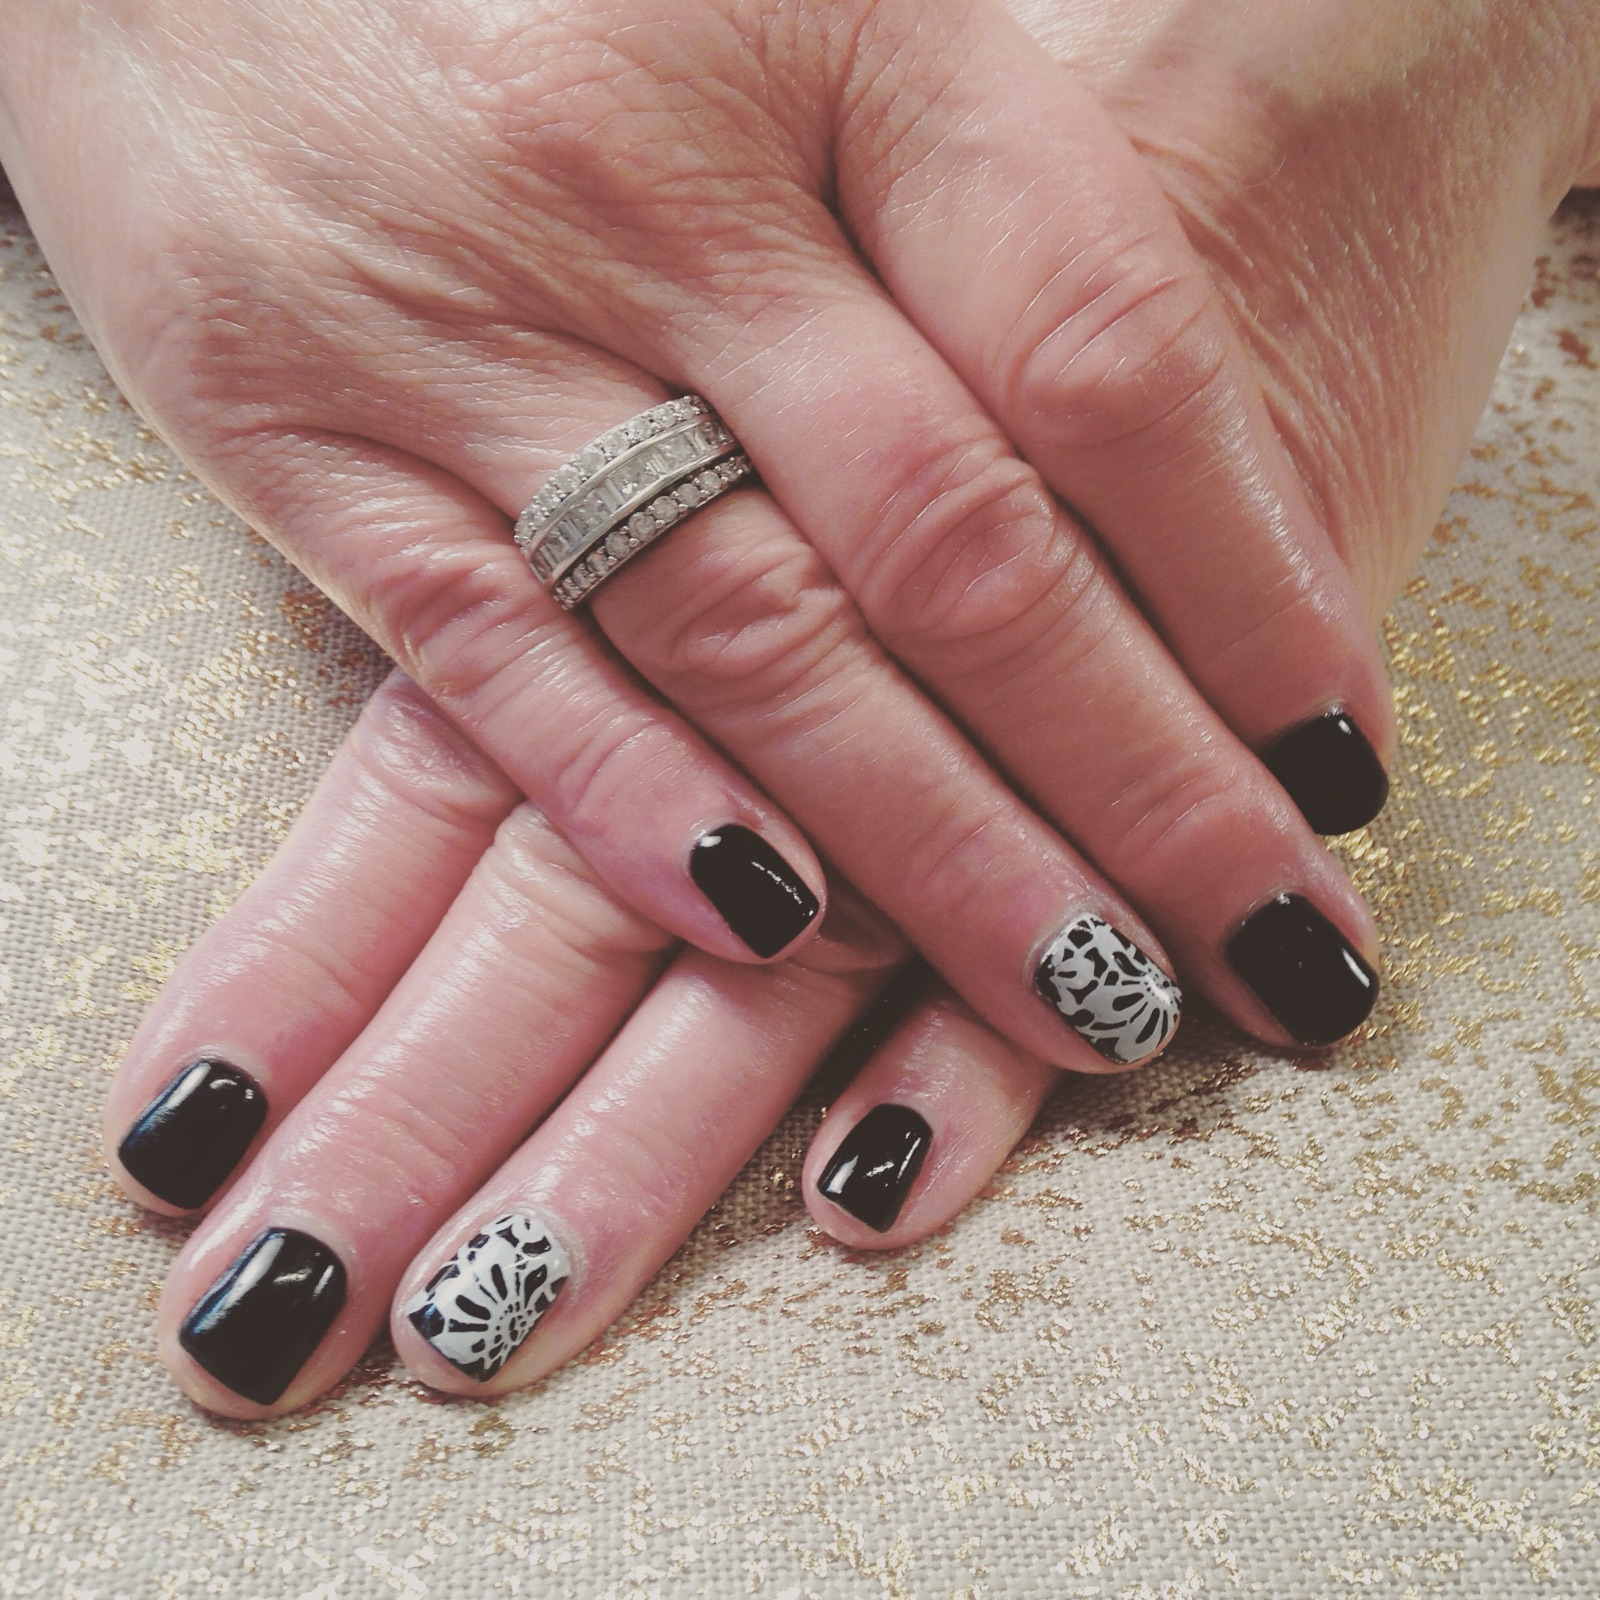 Goth Nails, Dark Nails, Vamp, Mani, Vamp Mani, Gel Nails, Black and White Nails, Black and White Mani, Stamping, Stamping Nail Art,